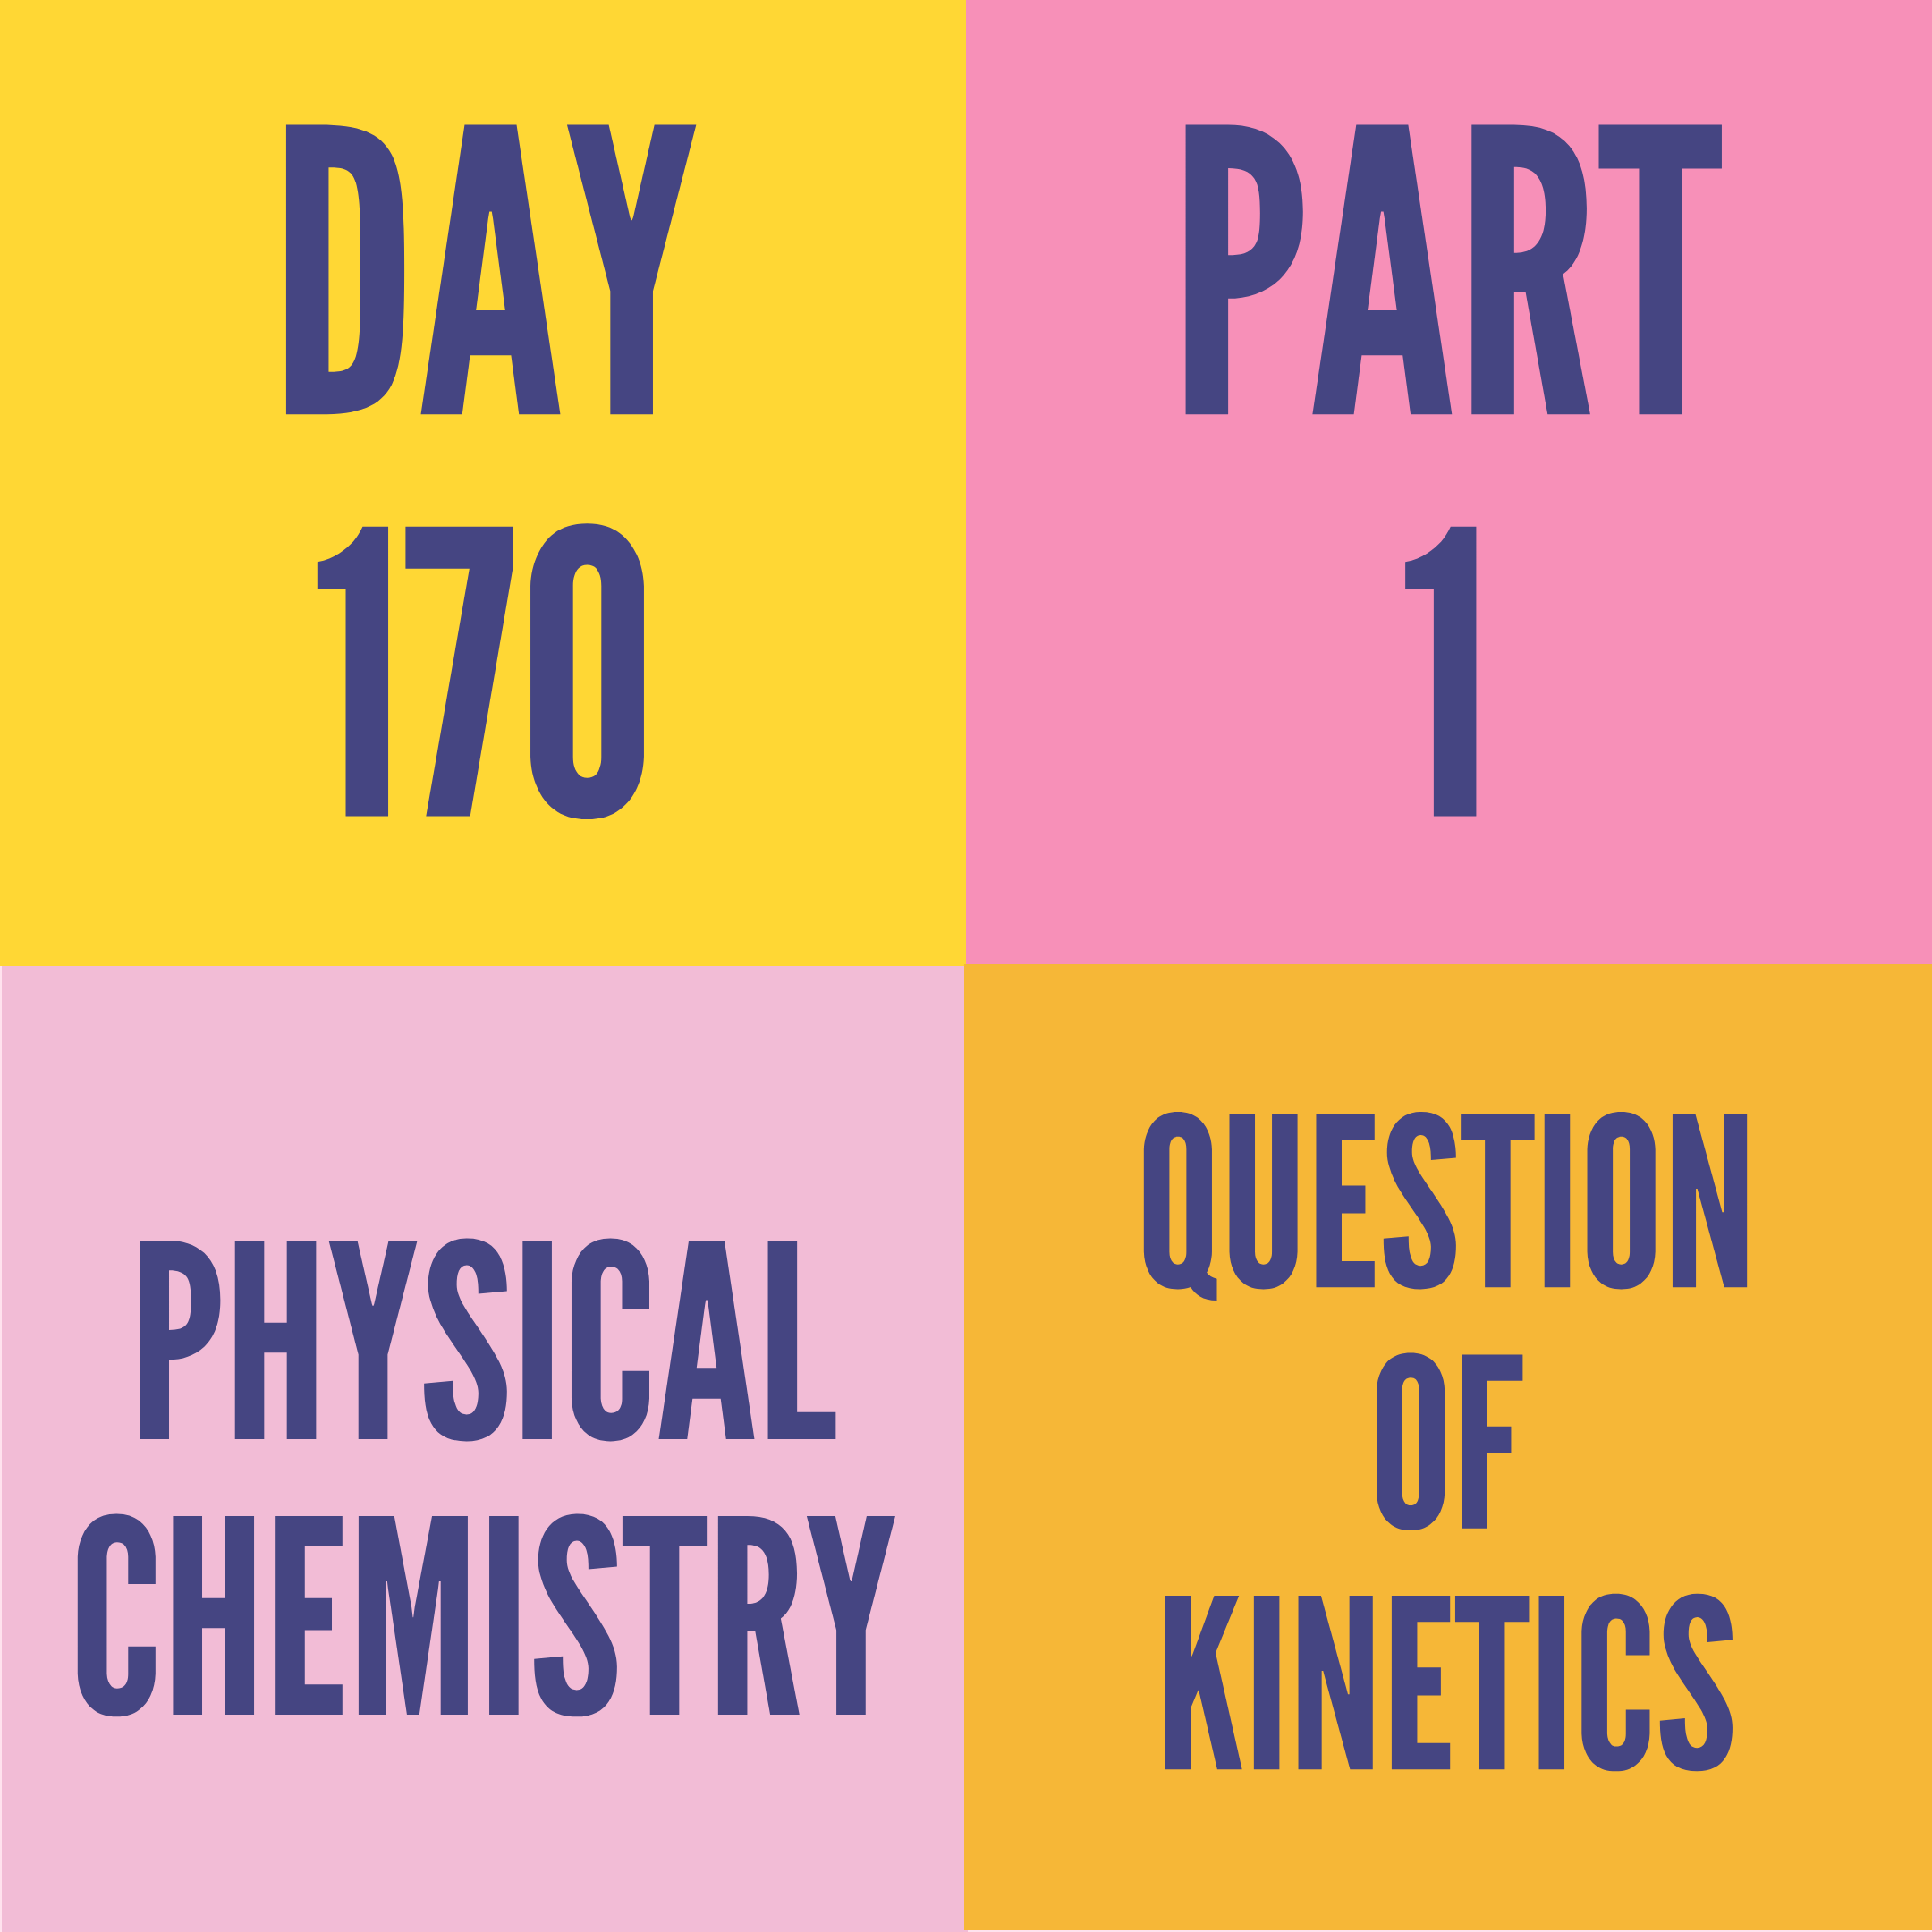 DAY-170 PART-1 (TARGET) QUESTION OF KINETICS